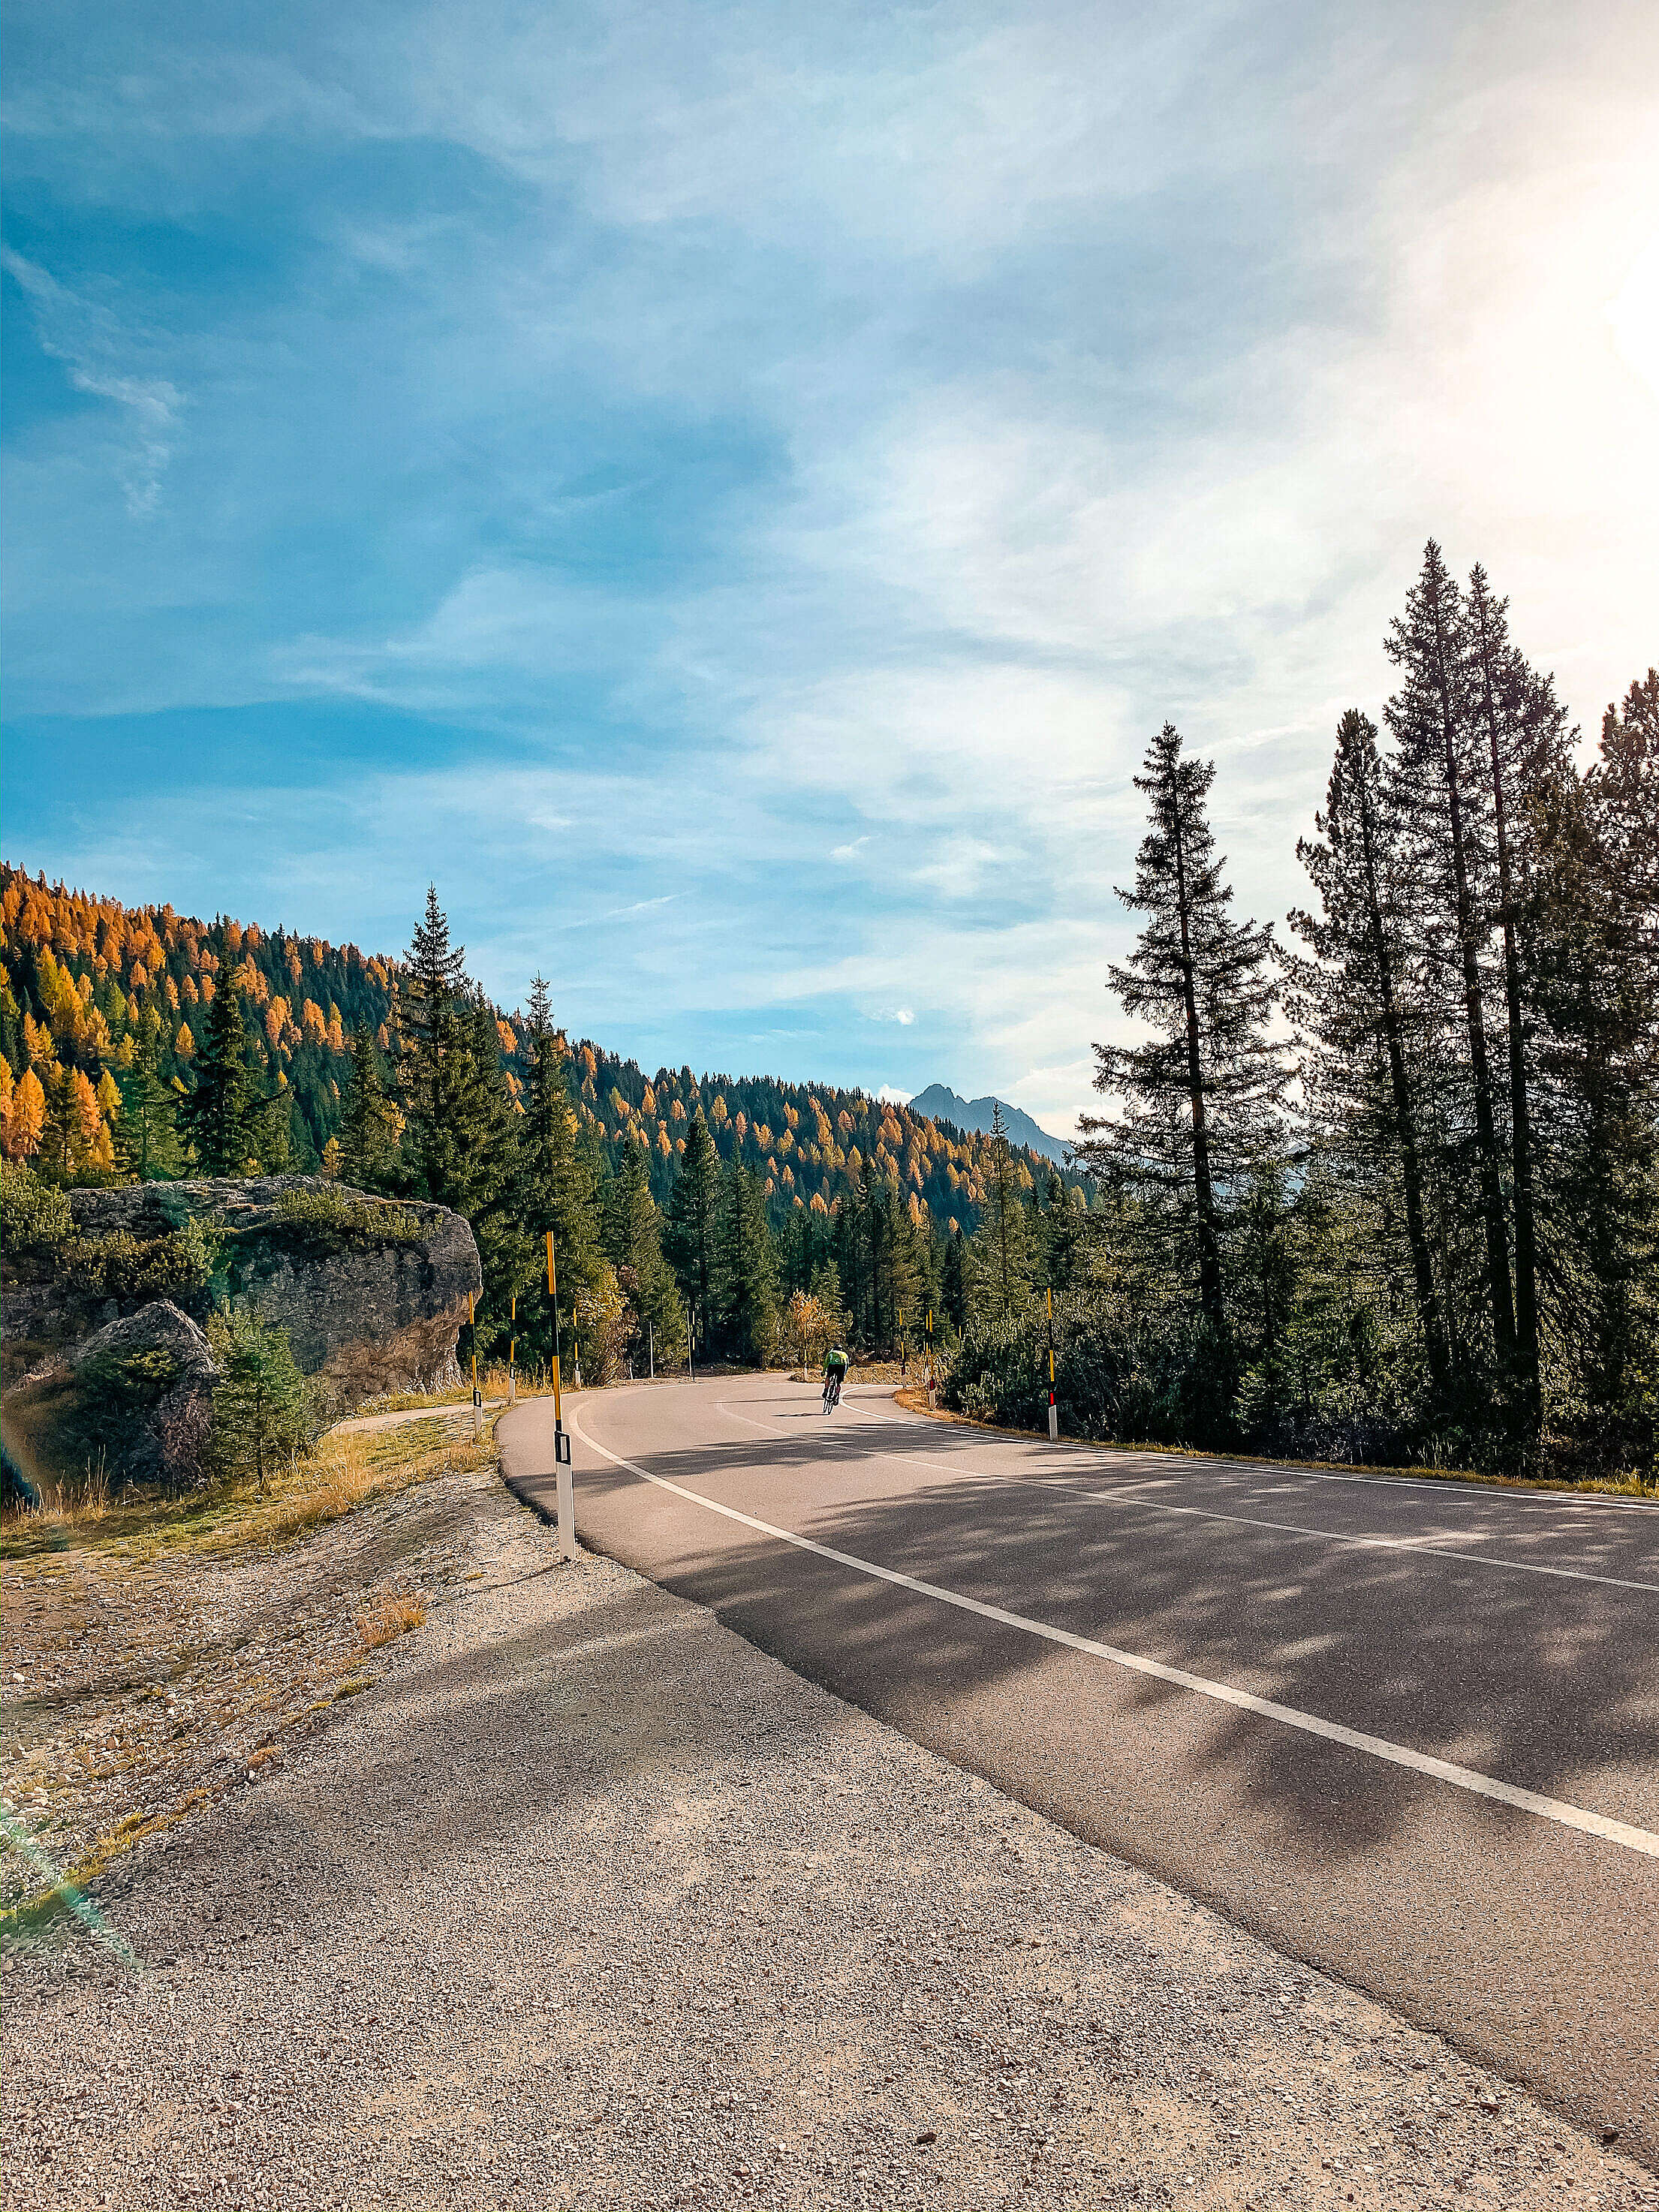 Random Road with a Cyclist in Dolomites, Italy Free Stock Photo